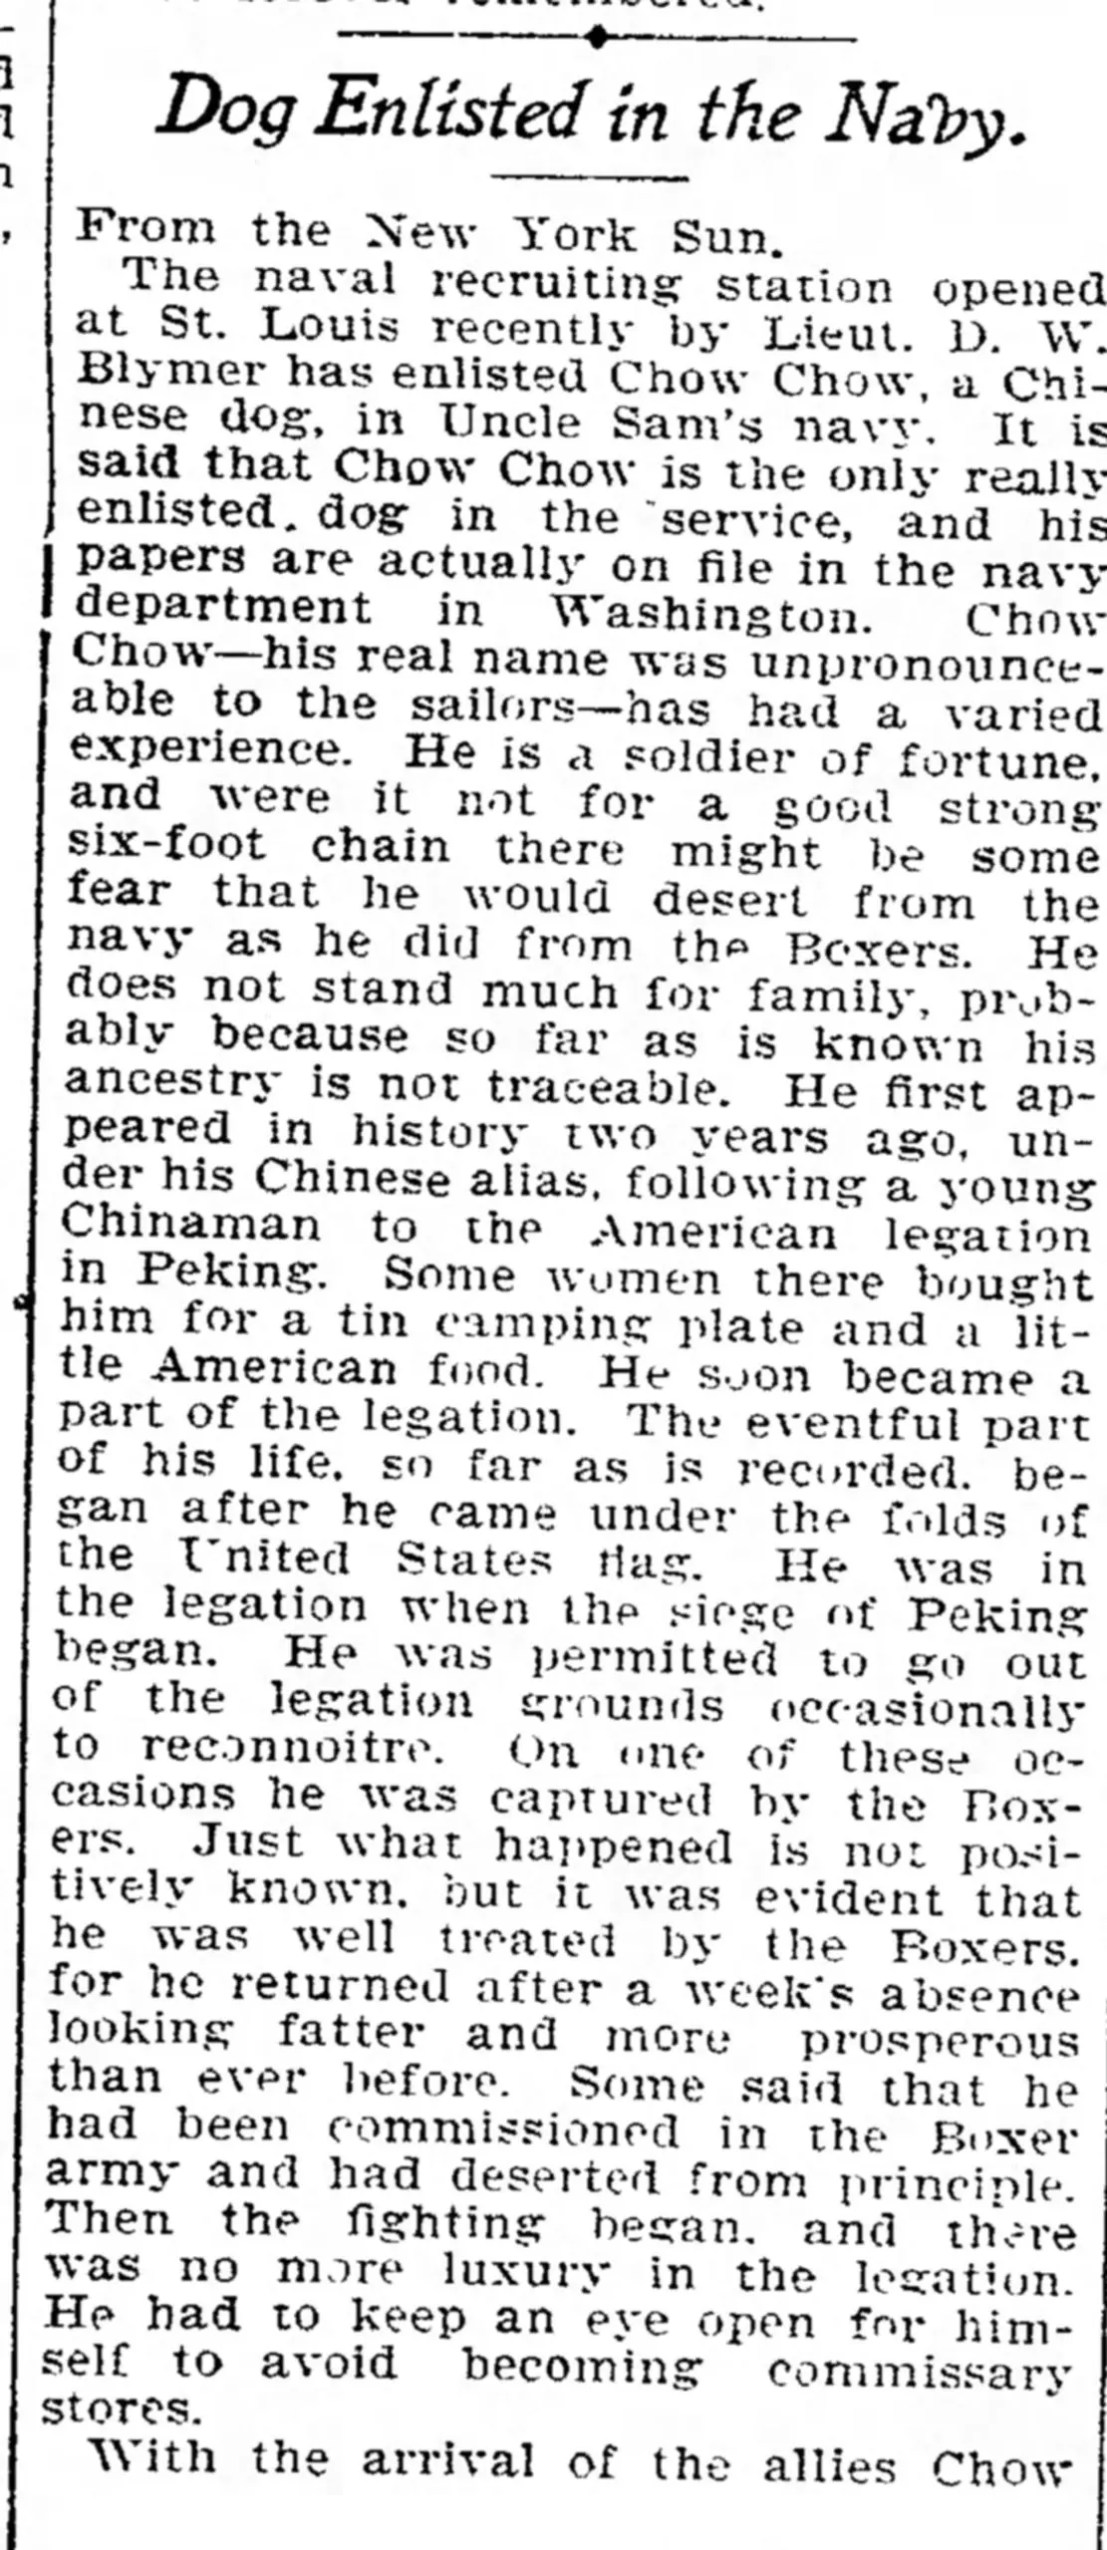 The_Anaconda_Standard_Sun__Oct_27__1901_